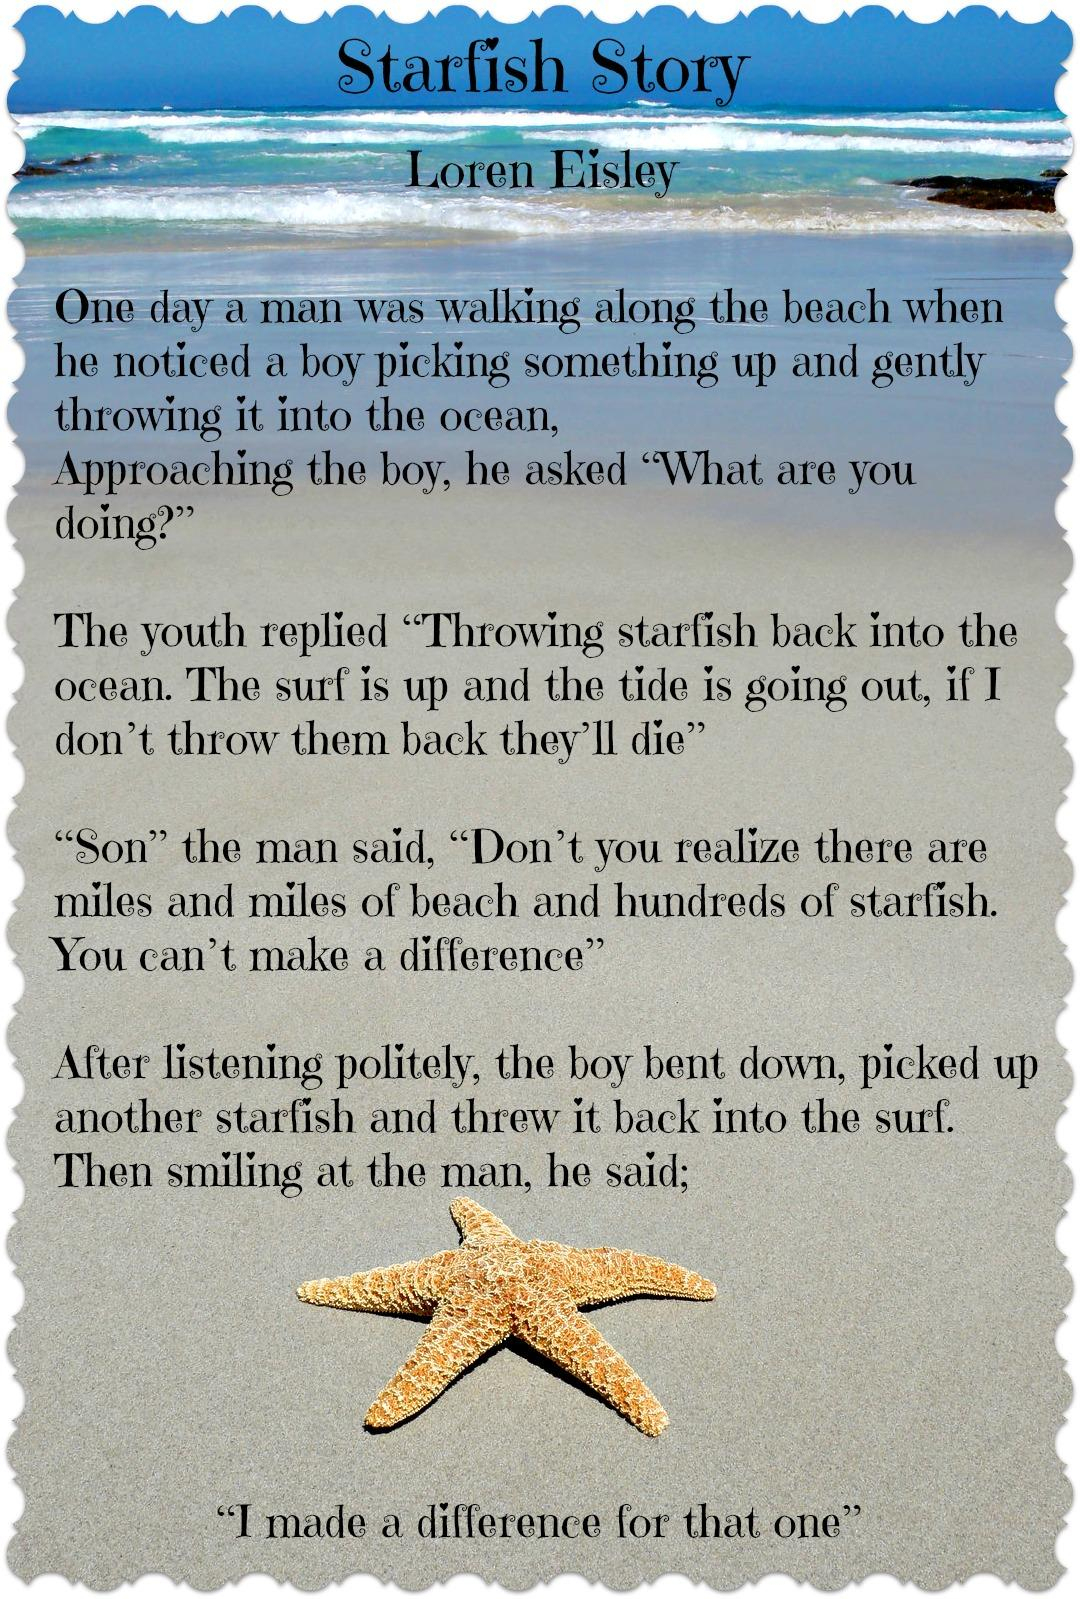 The Starfish Story Printable | Www.topsimages - Starfish Story Printable Free